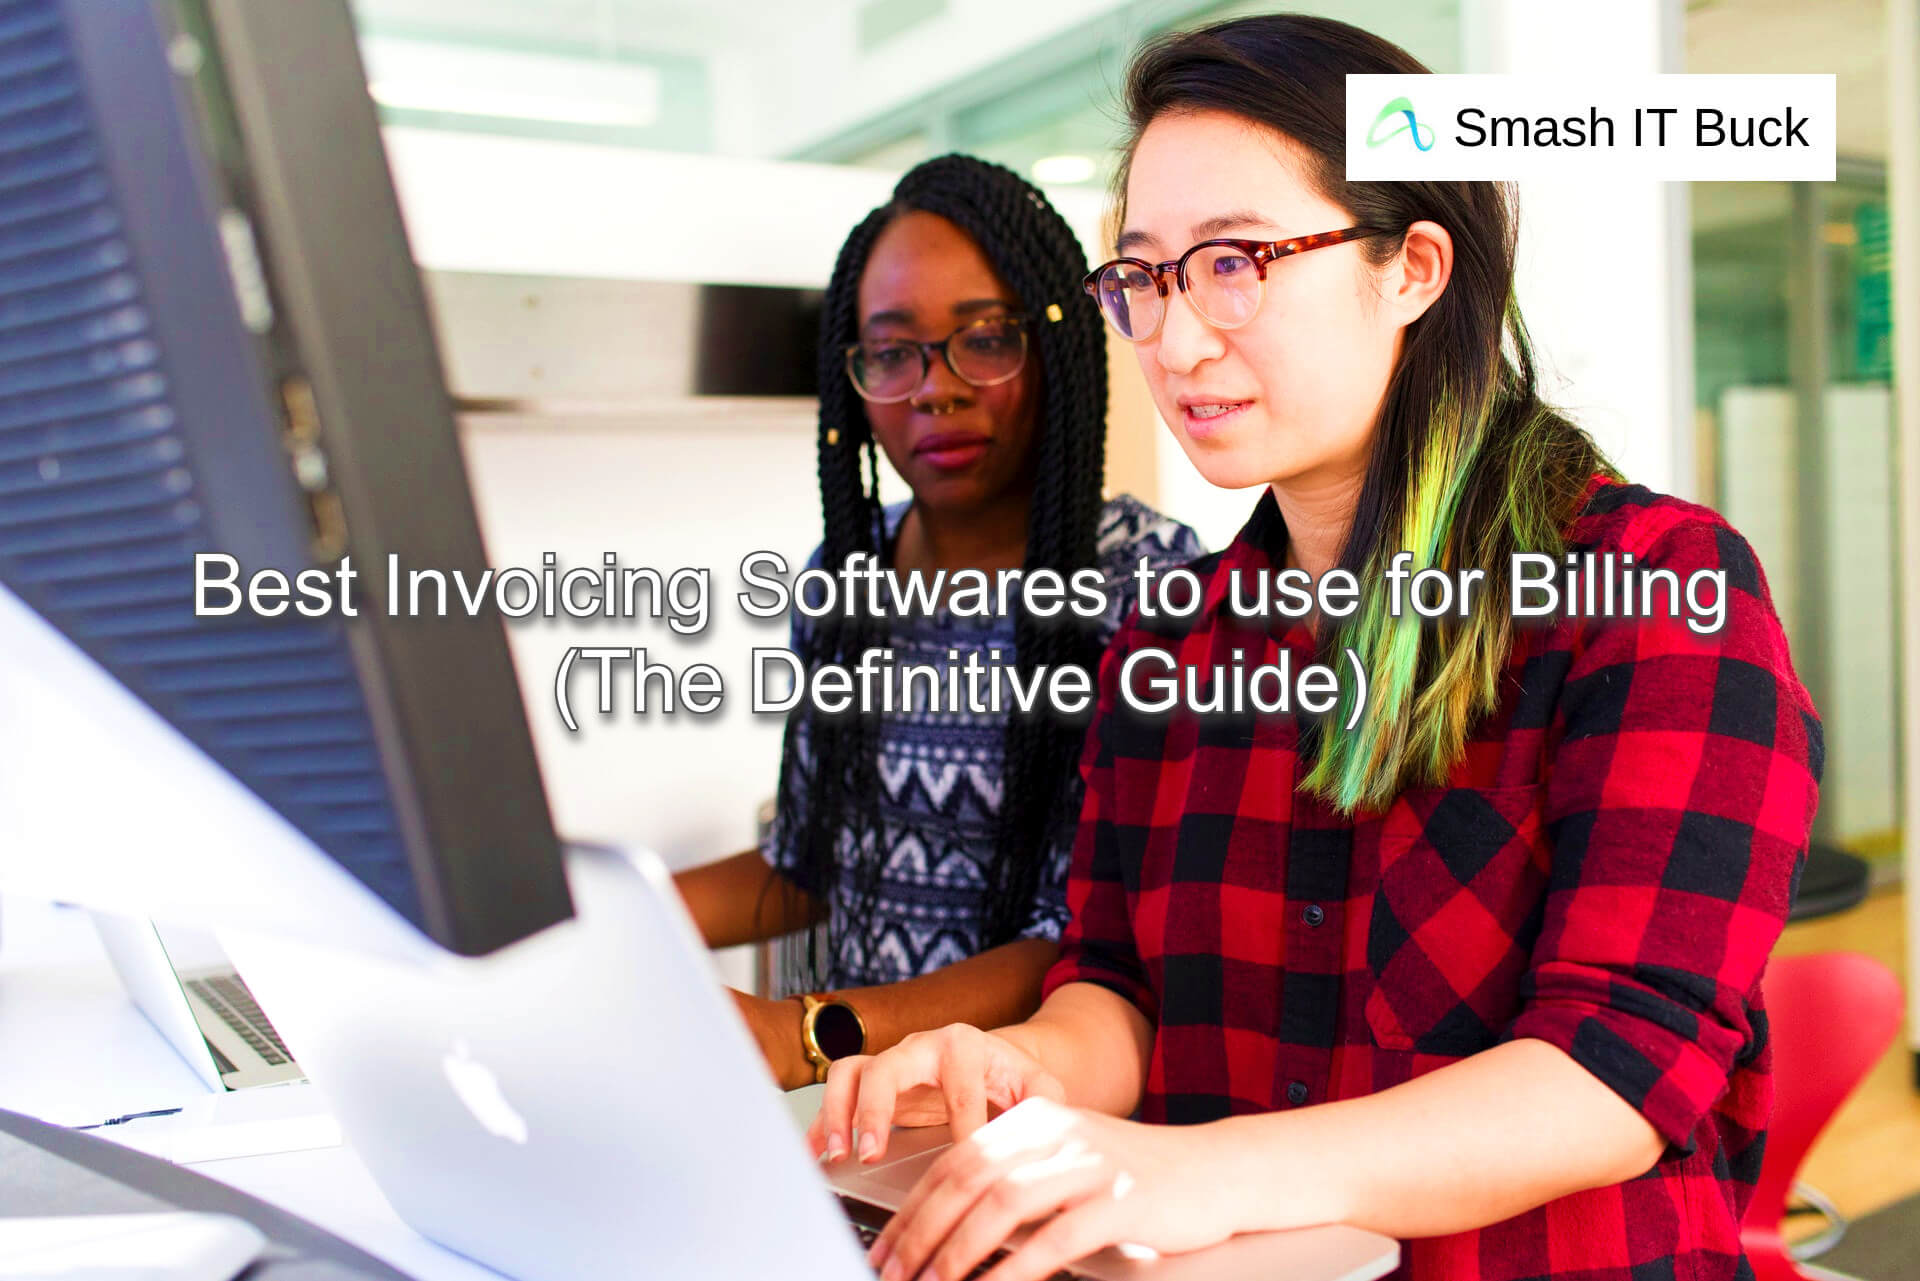 Best Invoicing Software for Billing to use in 2021